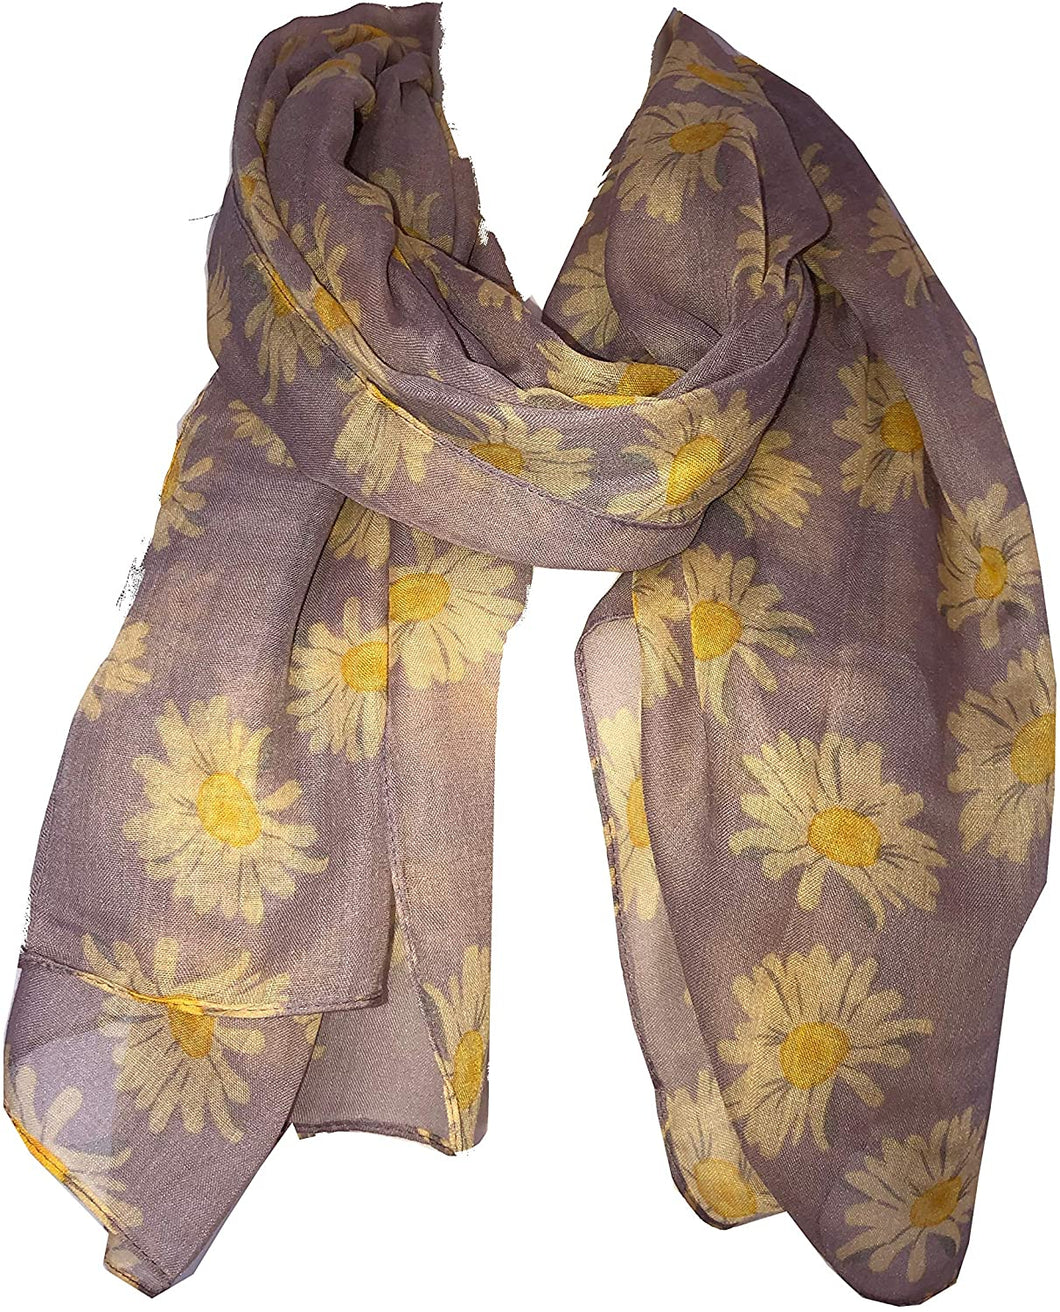 Pamper Yourself Now Lilac Daisy Scarf Lovely Soft Scarf